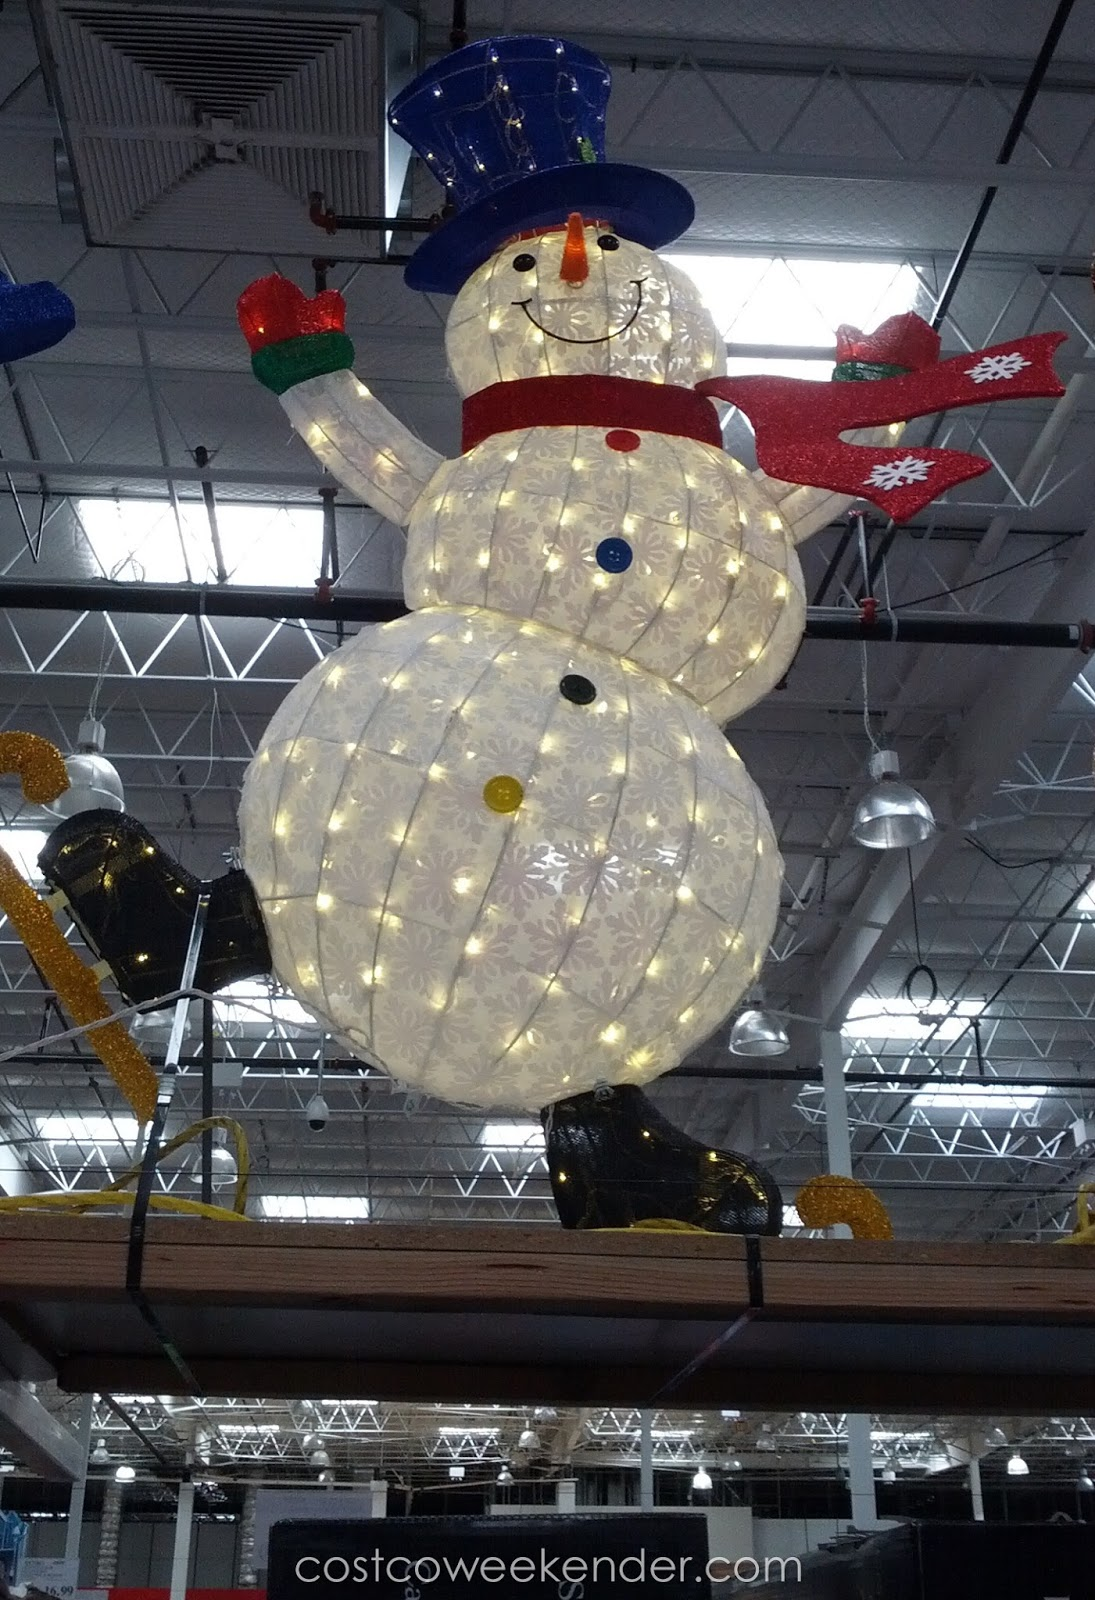 64 Quot Led Skating Snowman Costco Weekender